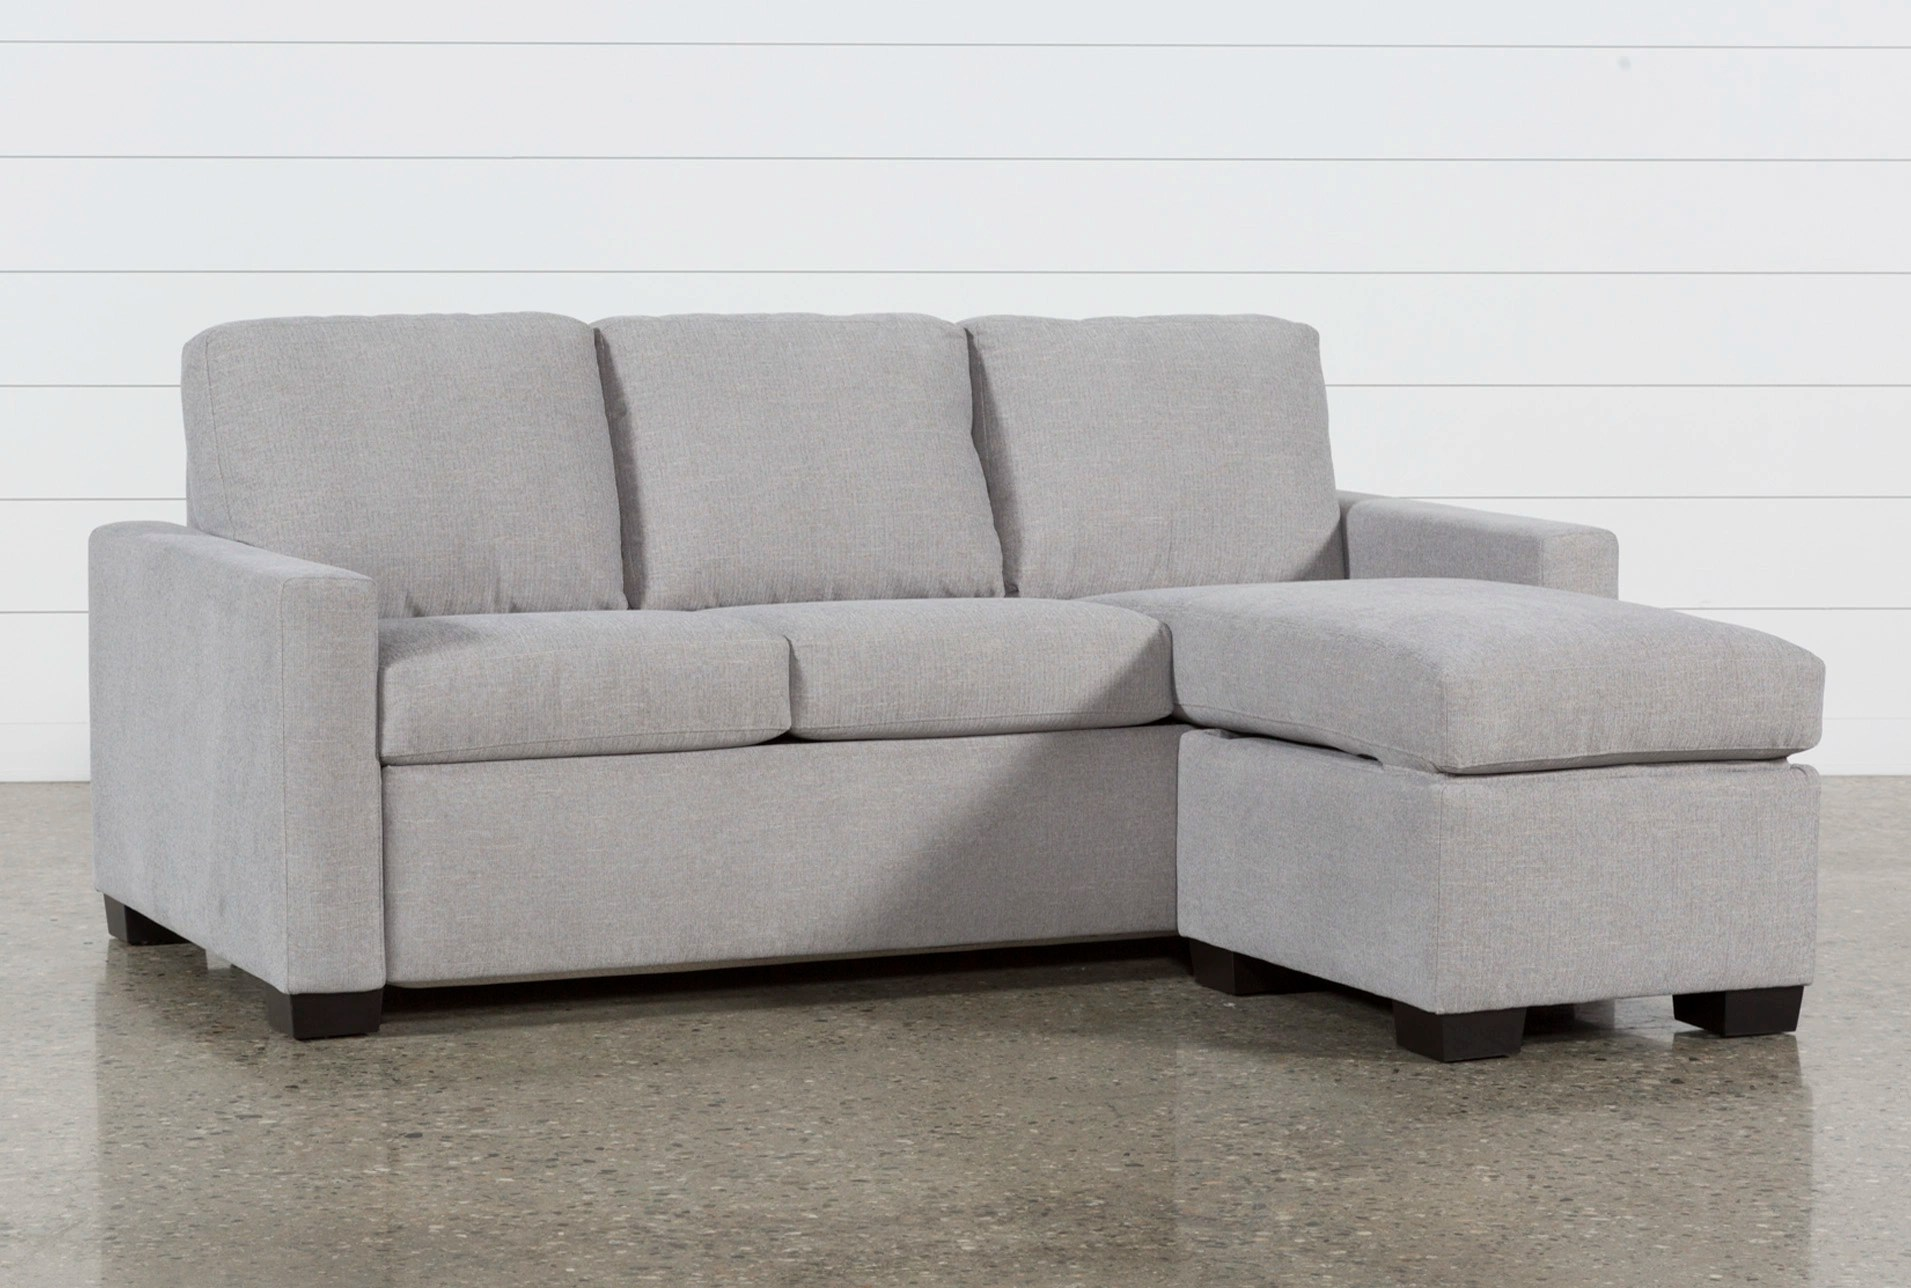 sofa bad steam cleaning sofas mackenzie silverpine queen plus sleeper w storage chaise living spaces